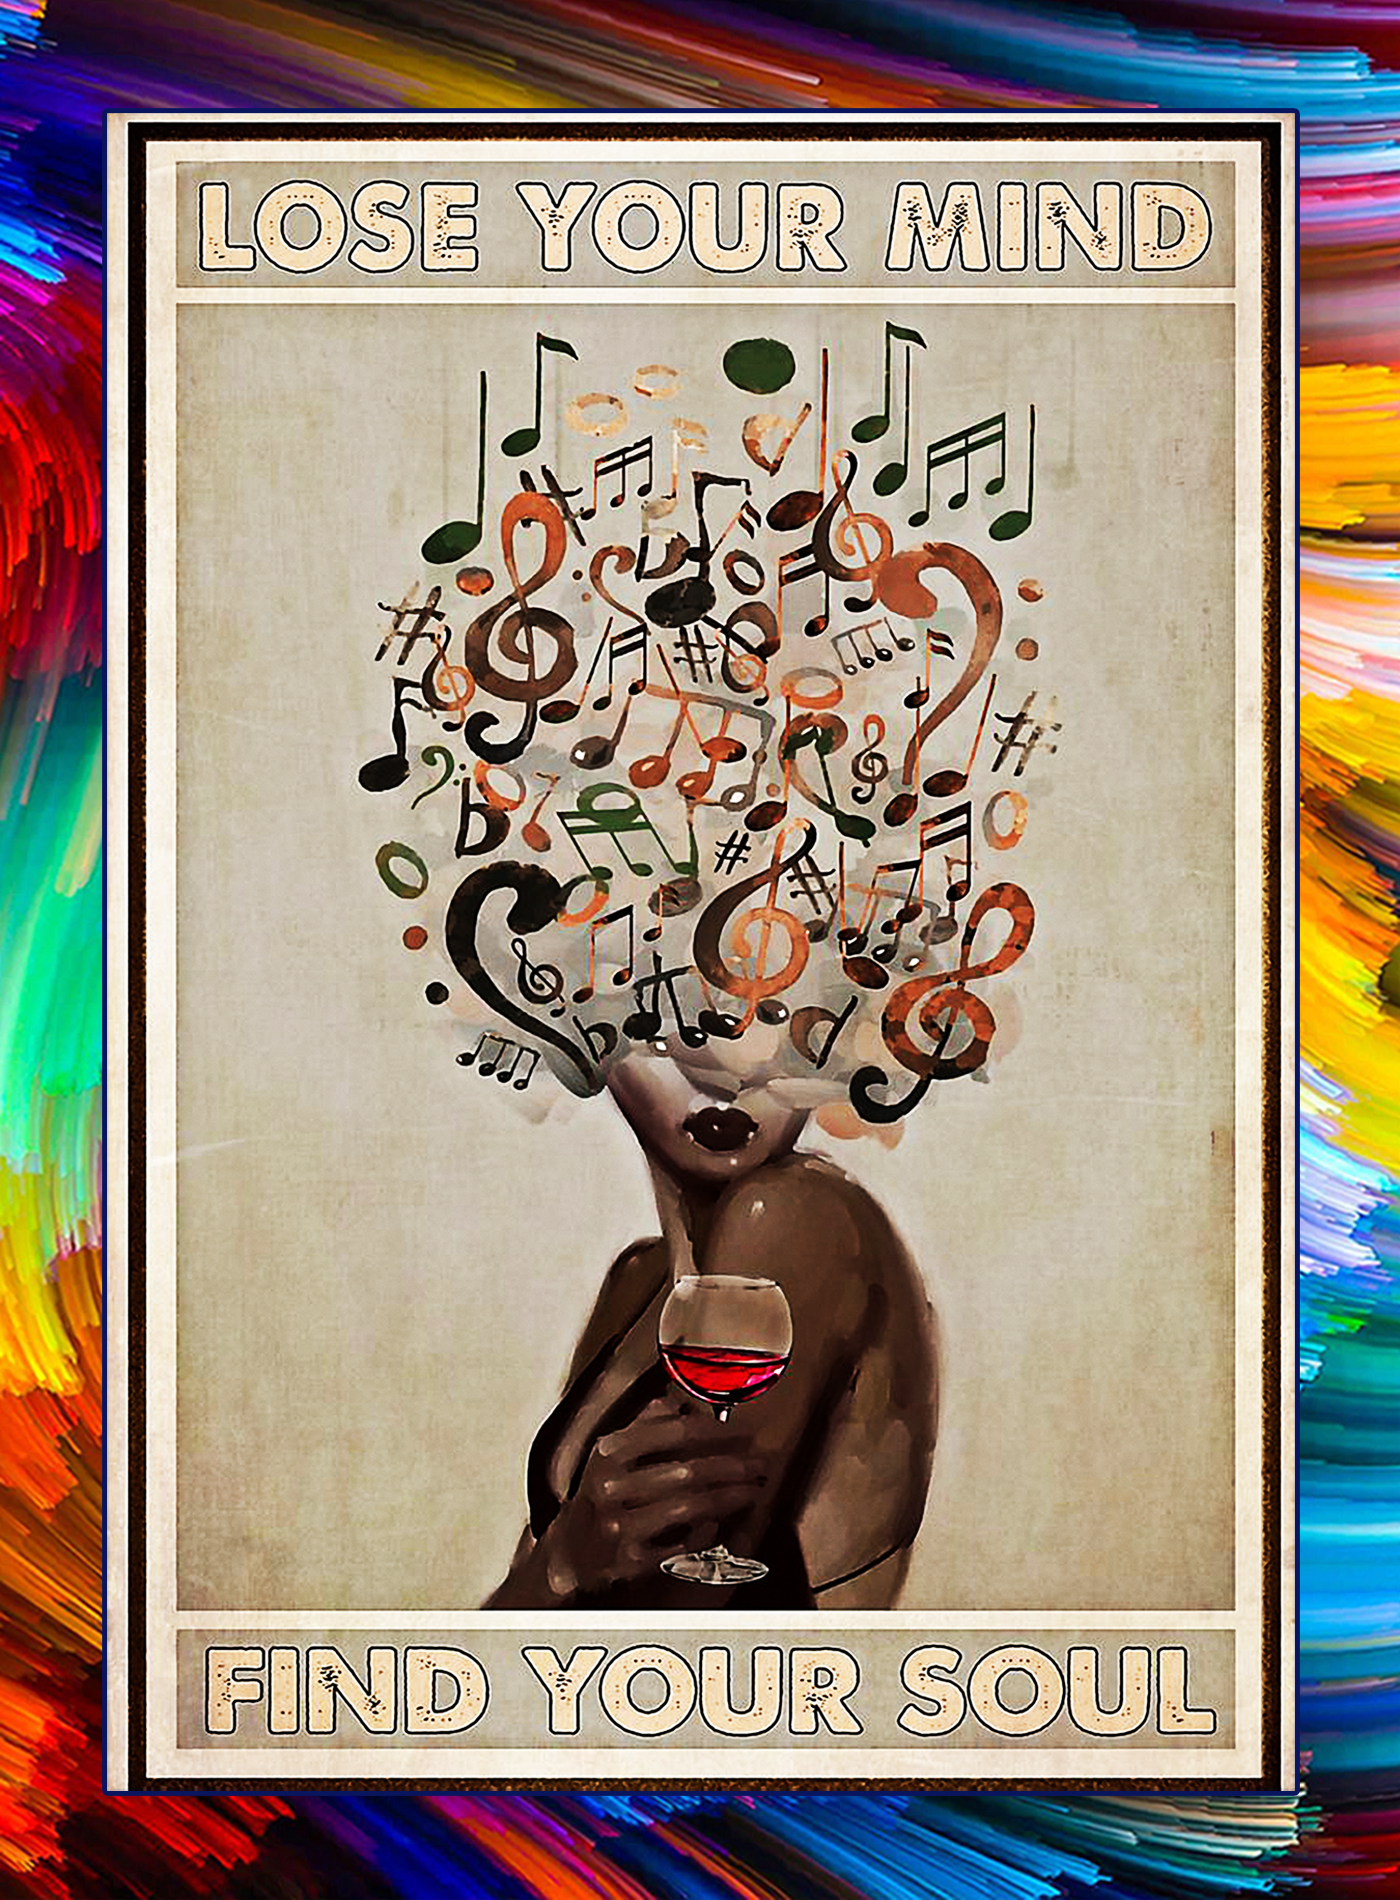 Lose your mind find your soul vinyl and wine poster - A1